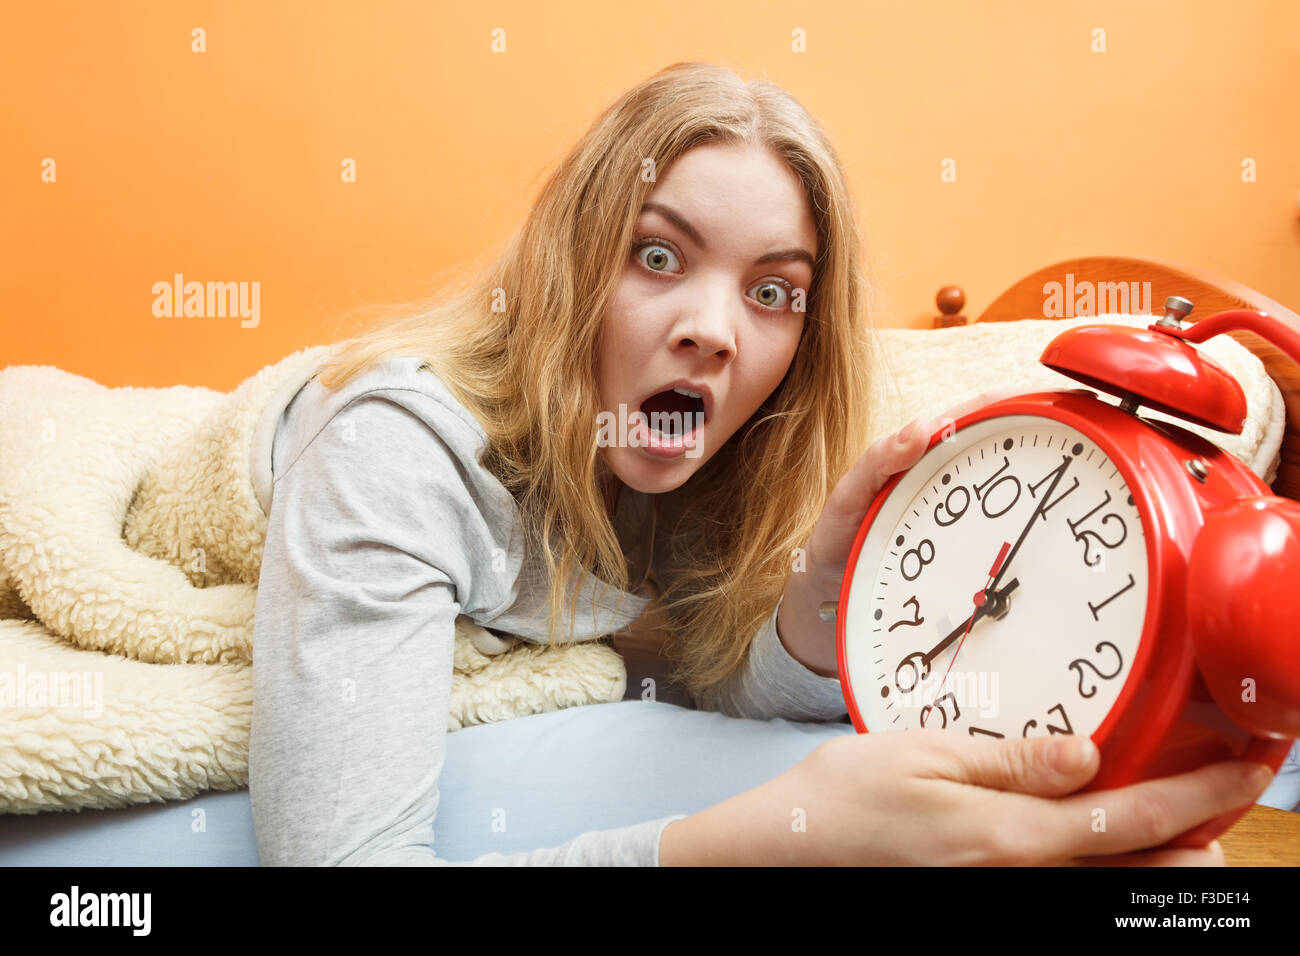 How to Wake Up Late and Still Make It on Time picture